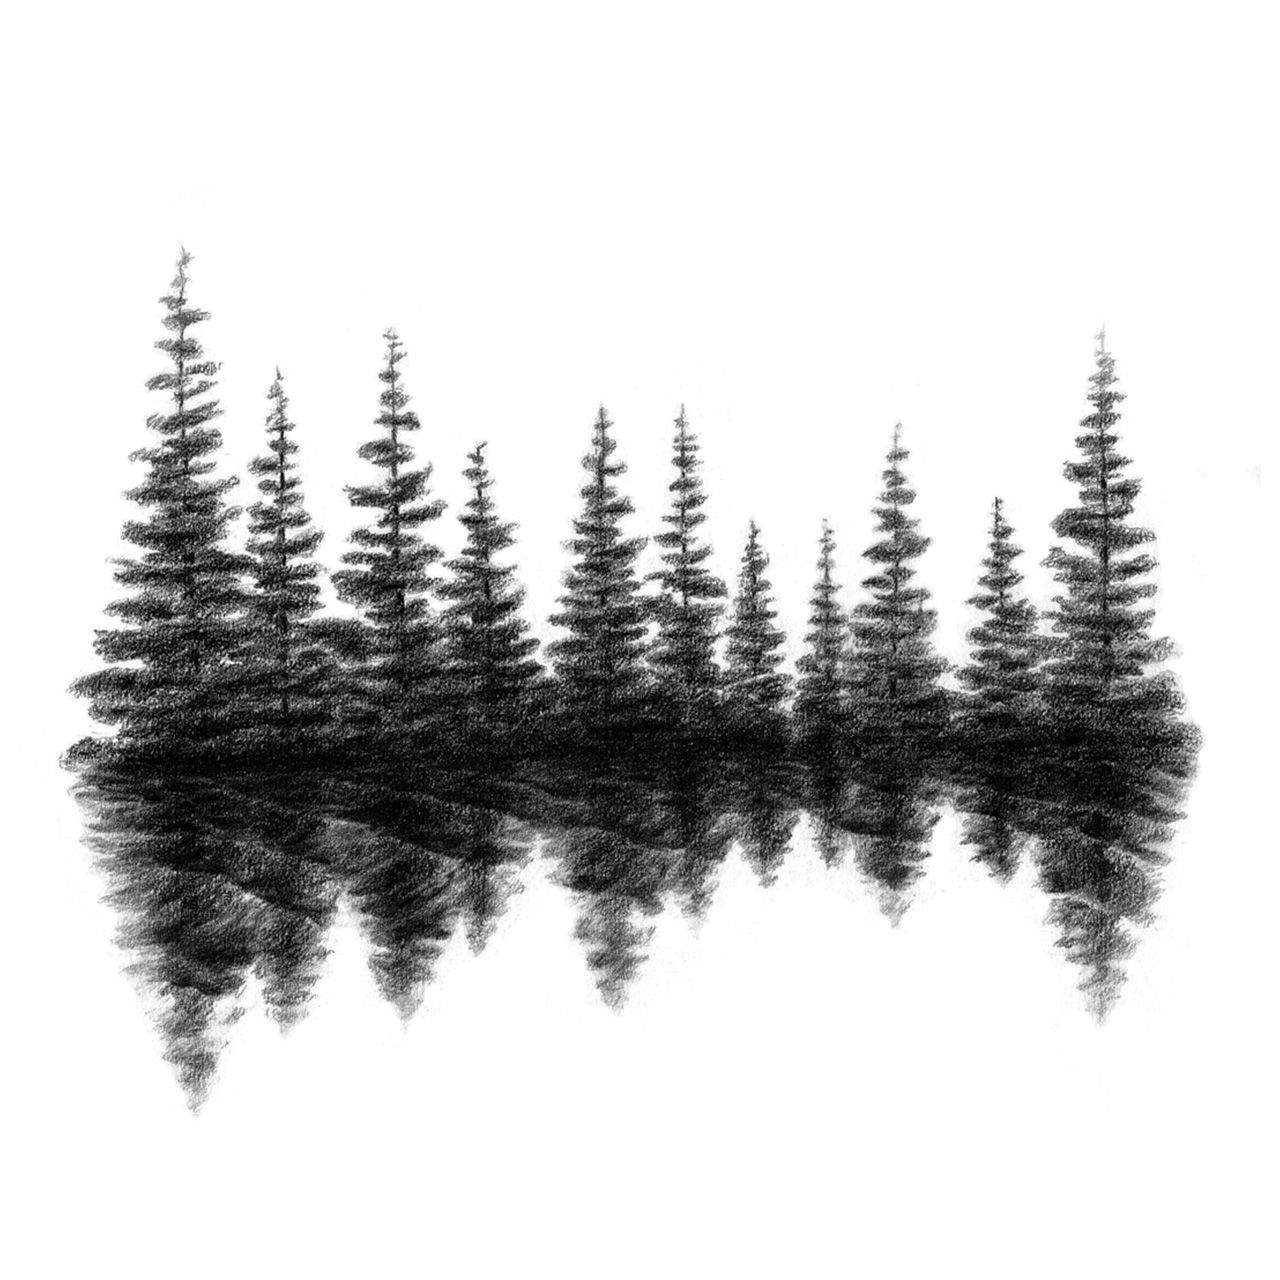 Evergreen Tree Line Silhouette   Embroidery   Pinterest ...